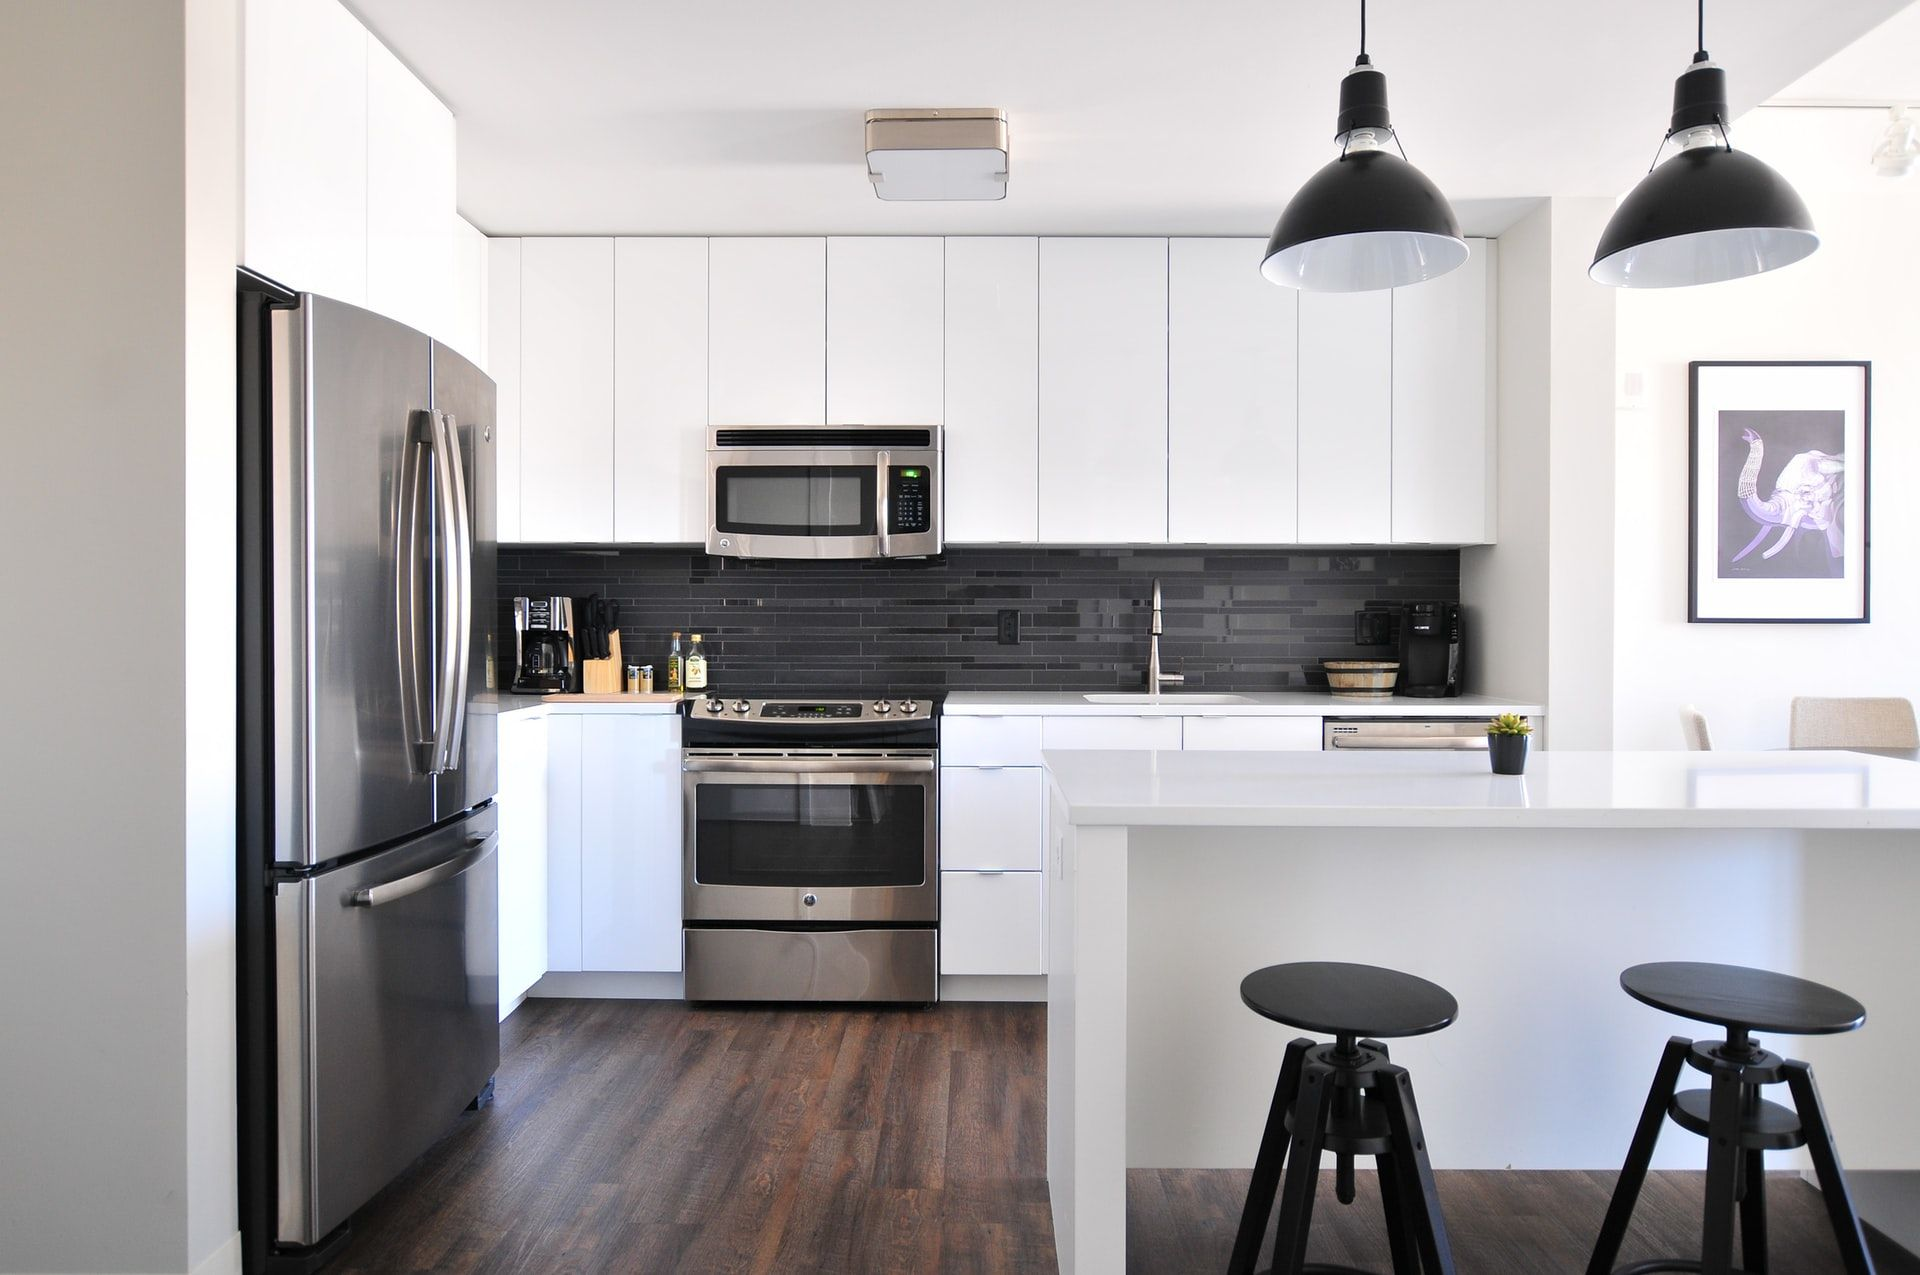 A kitchen interior with a big refrigerator and hardwood kitchen floors